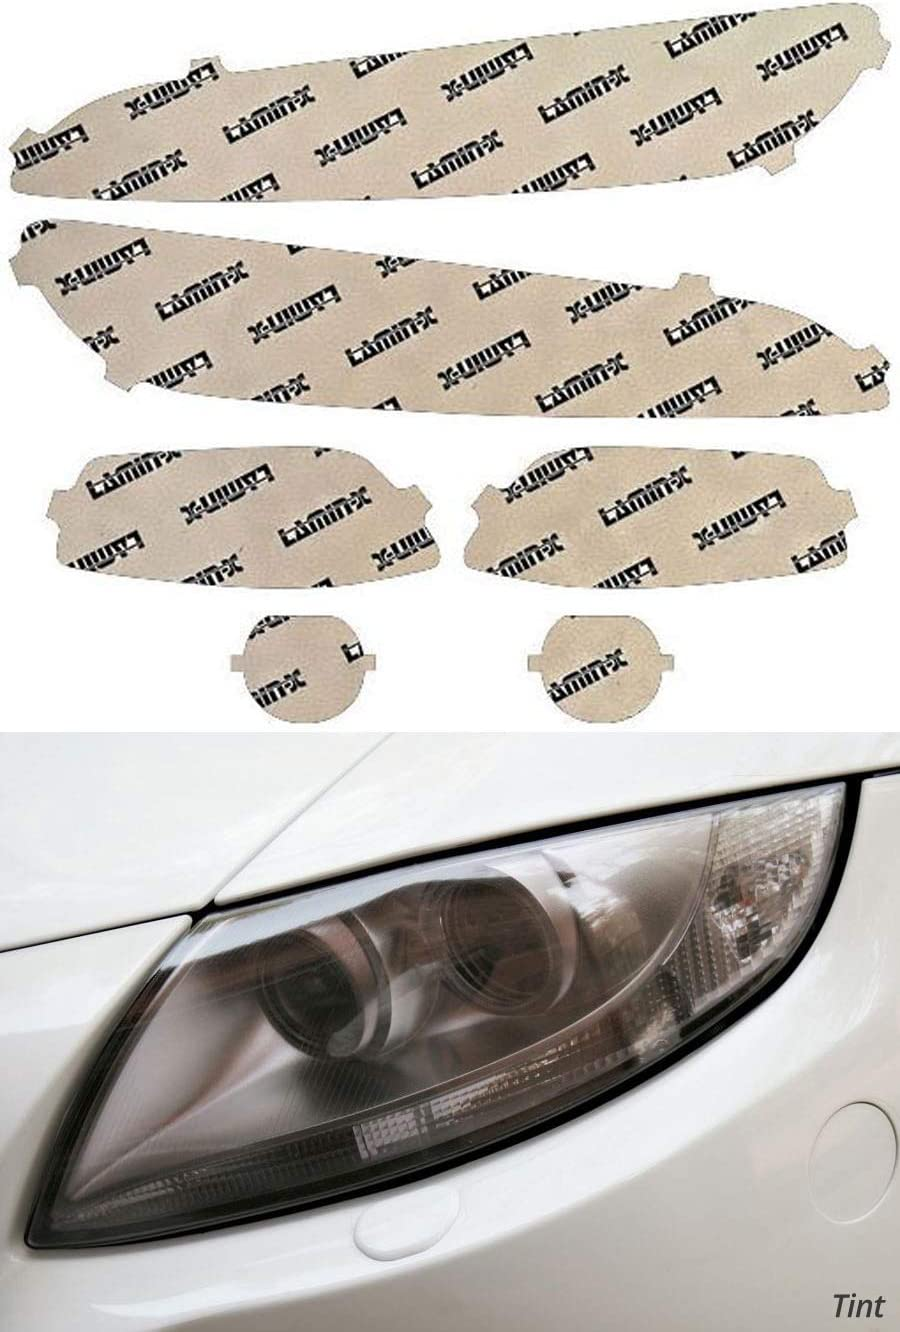 Lamin-x J016T Headlight Cover 61b7HDSfo6L